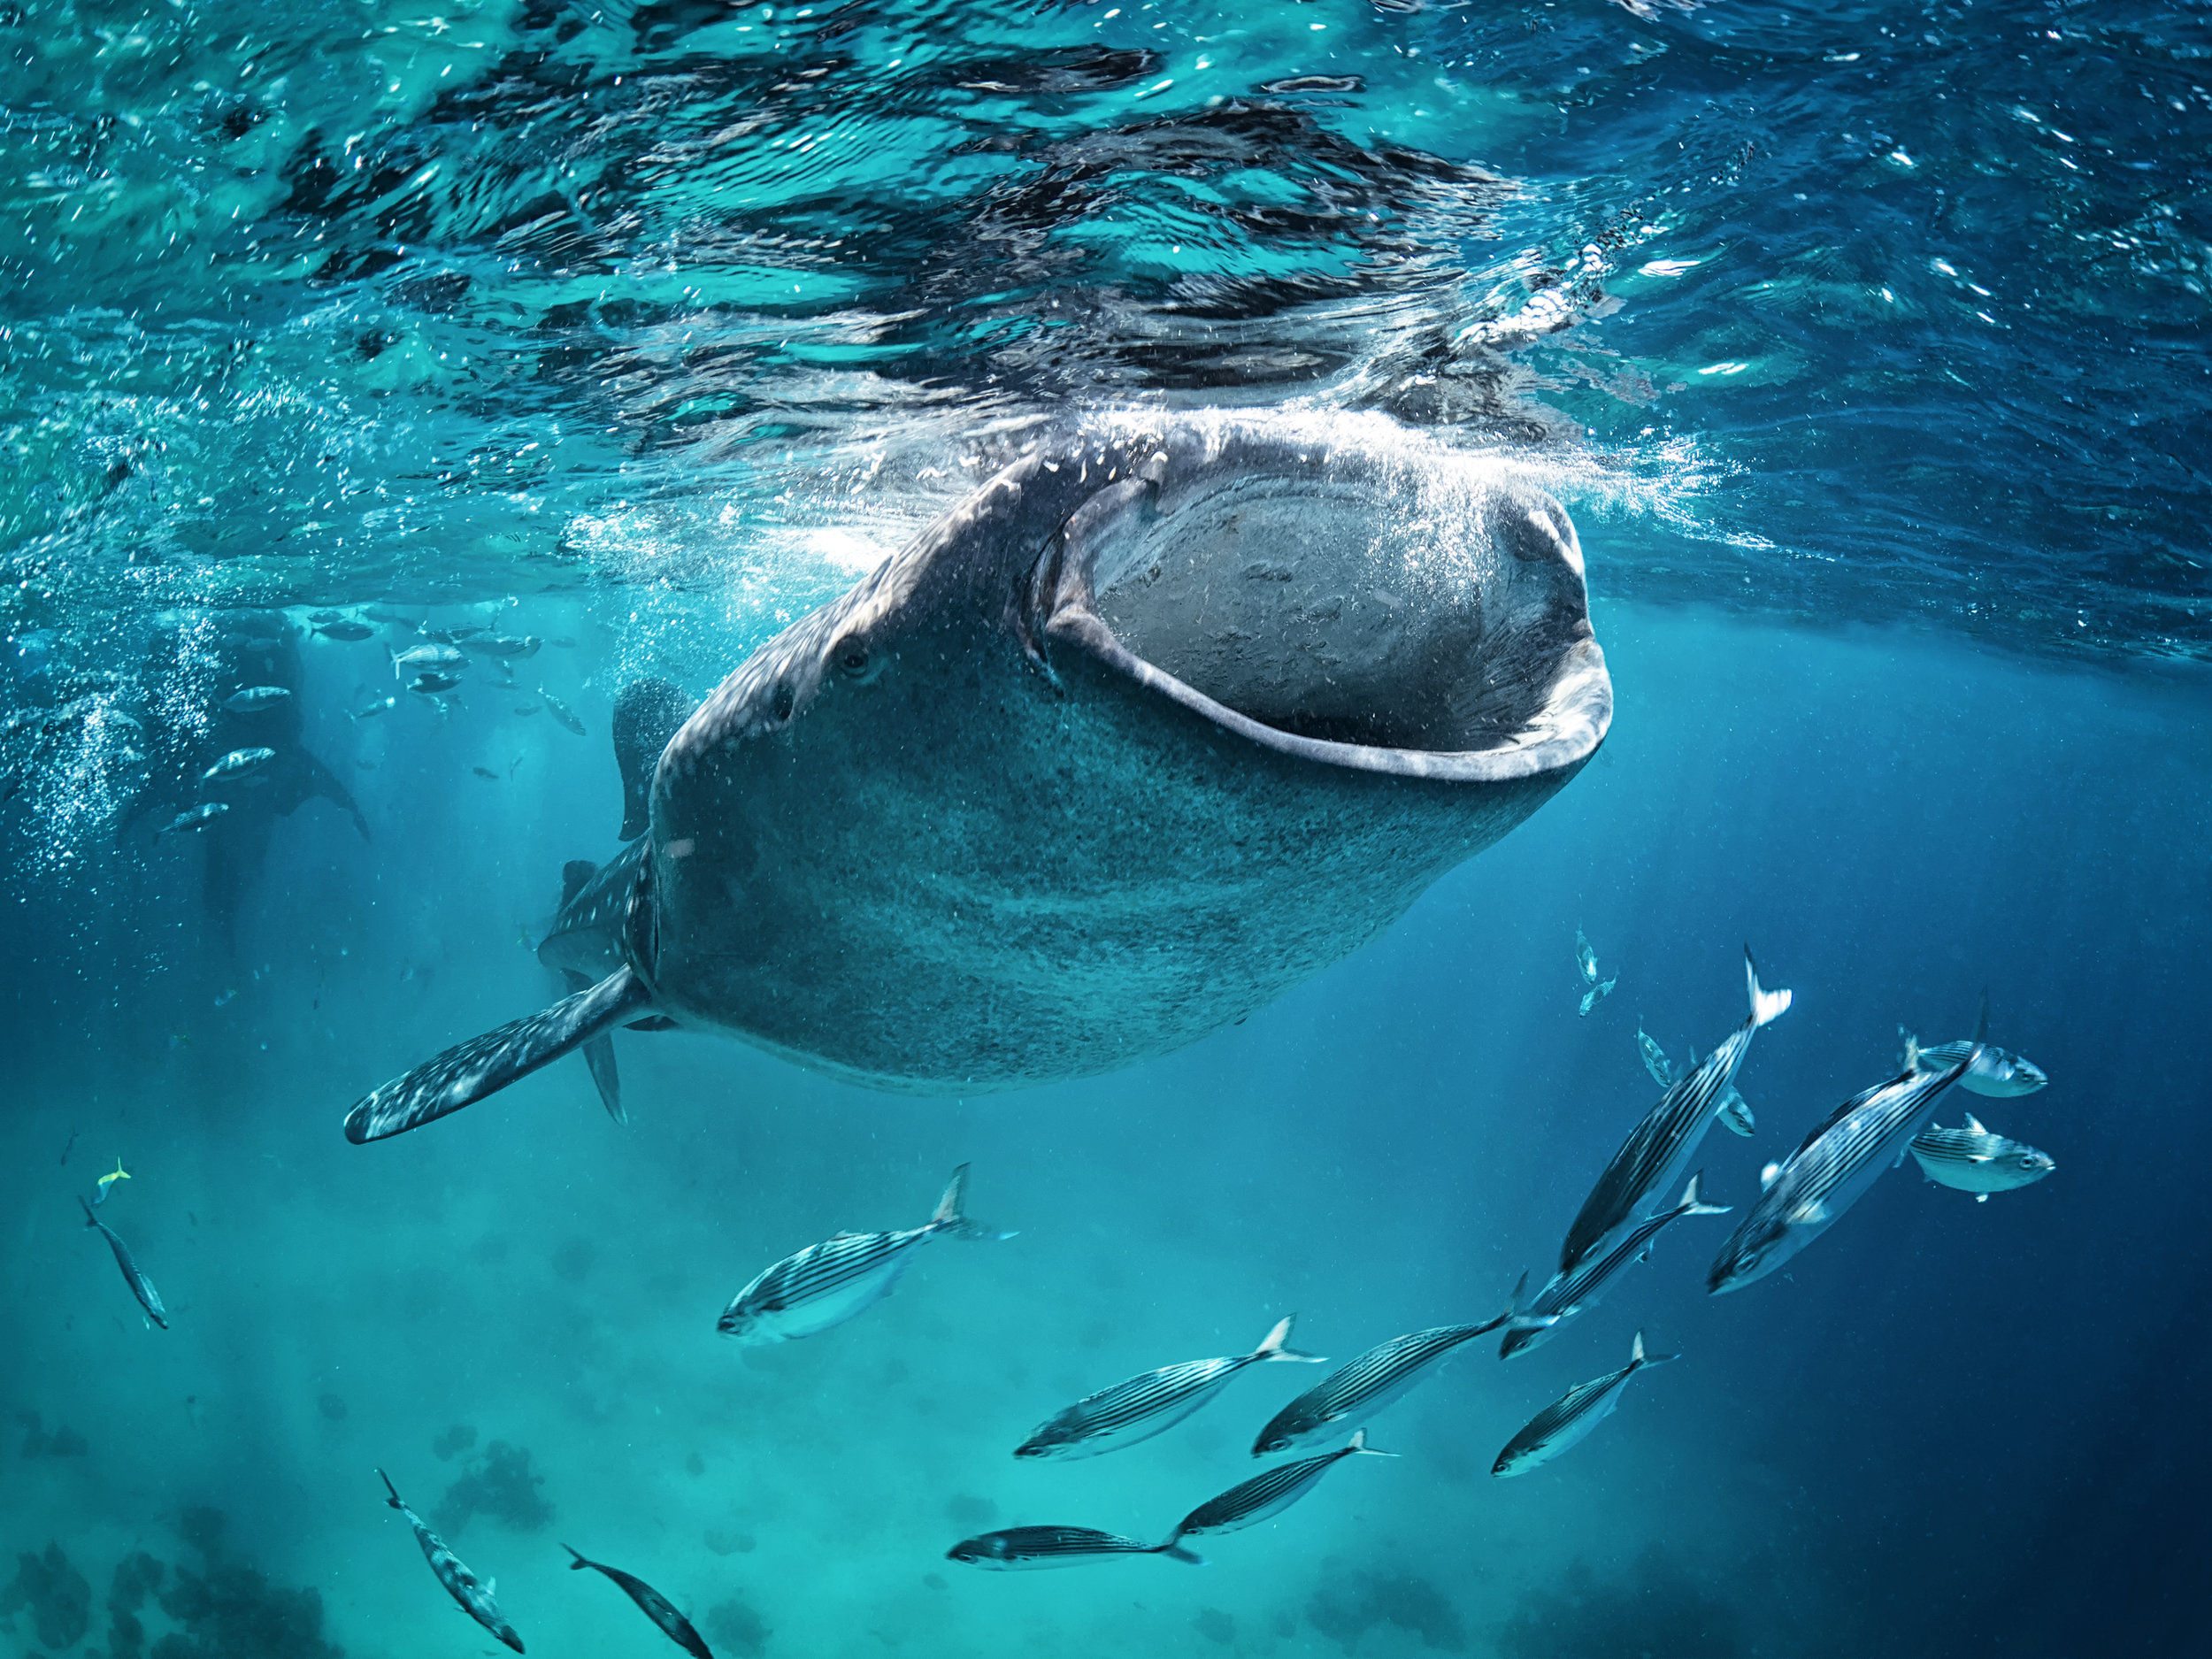 Whale shark (Stegostoma fasciatum). Photo: Shutterstock [courtesy of the Zoological Society of London]